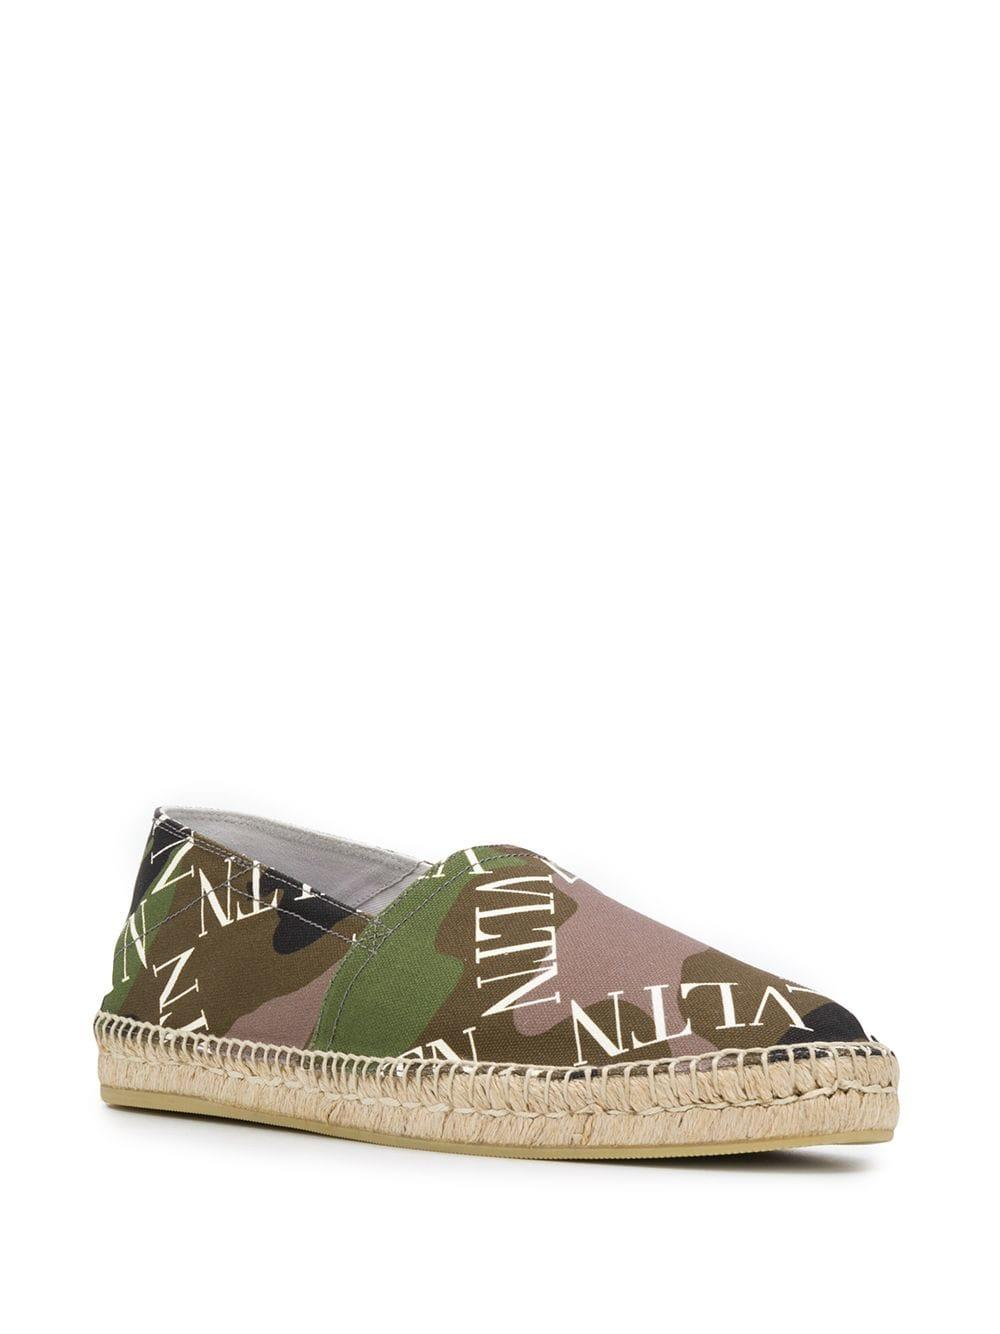 472455eb7c4b6 Lyst - Valentino Logo Grid Camouflage Espadrilles in Green for Men